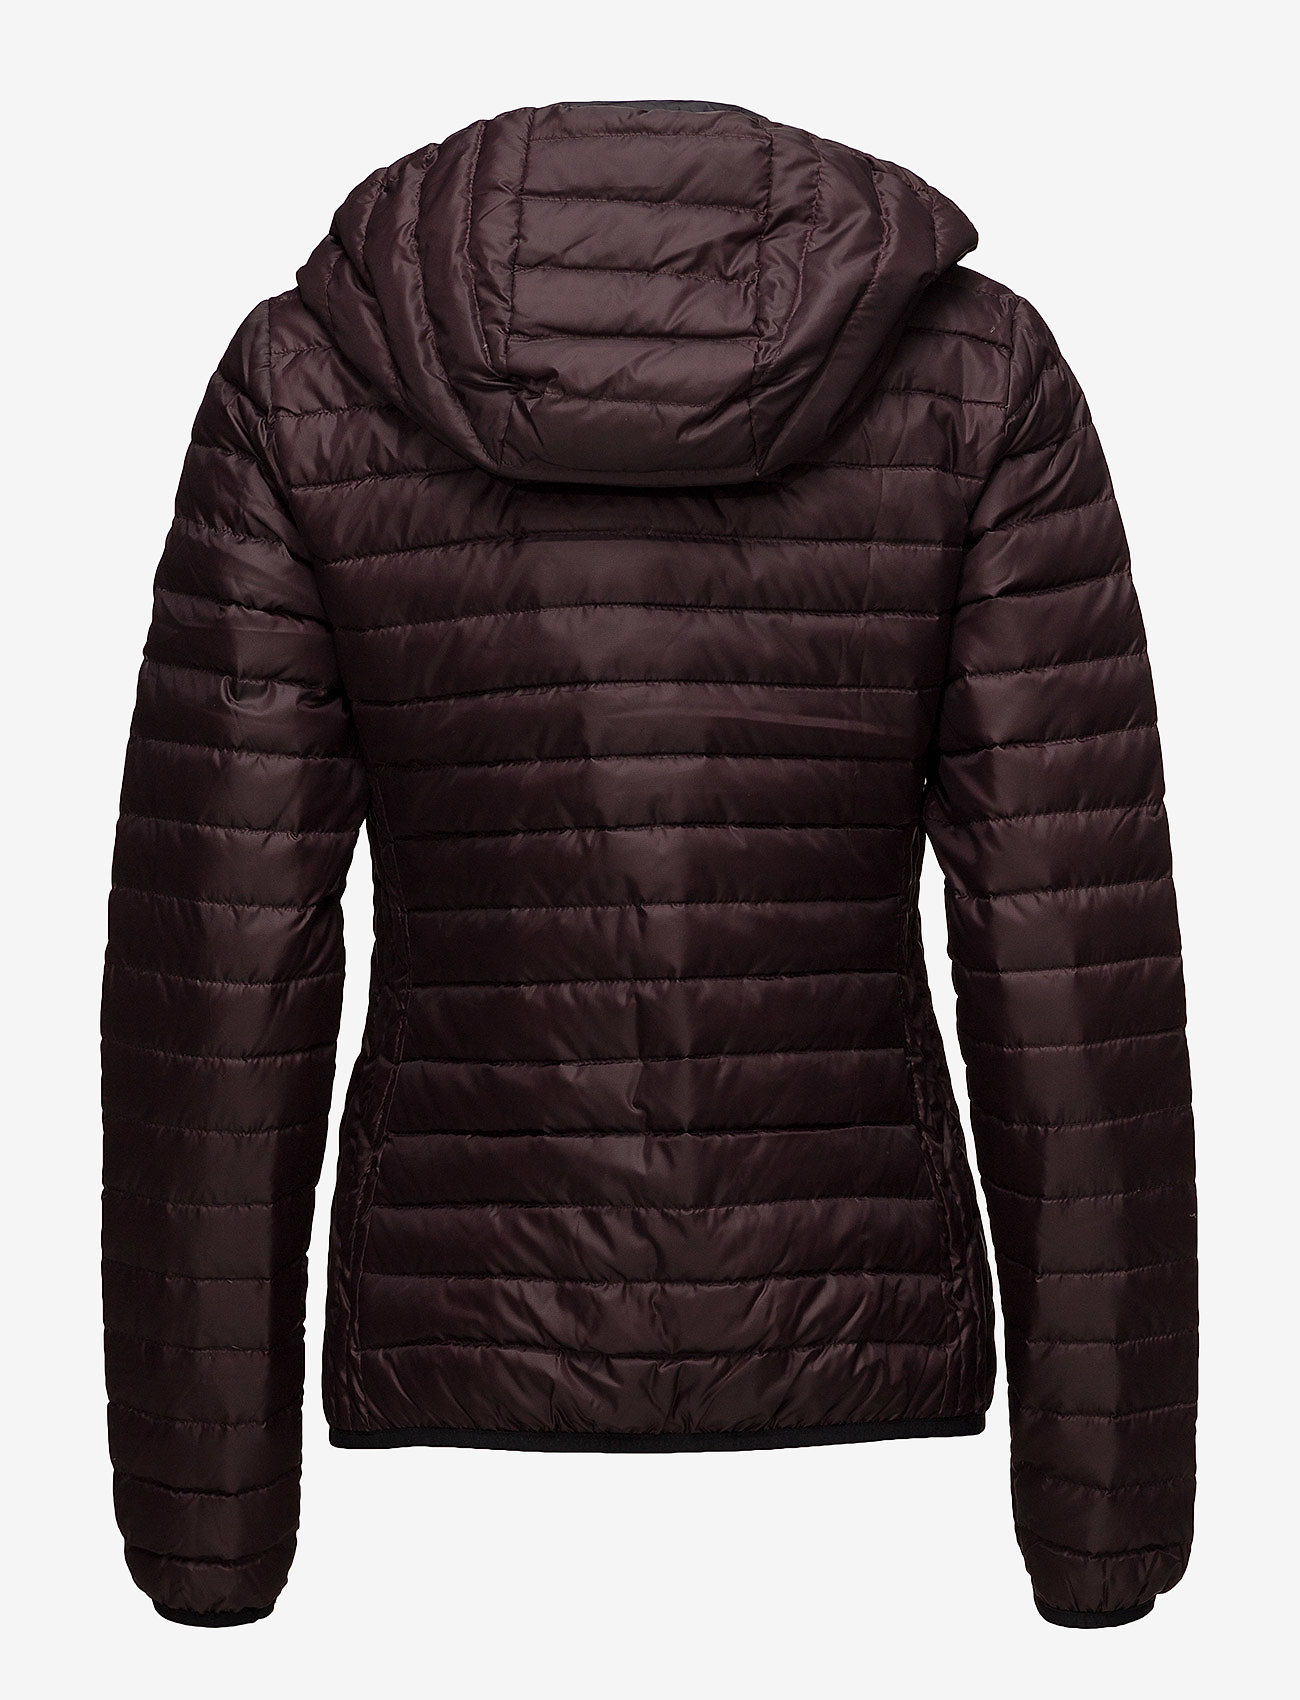 Superdry Core Down Hooded Jacket - Jackets & Coats